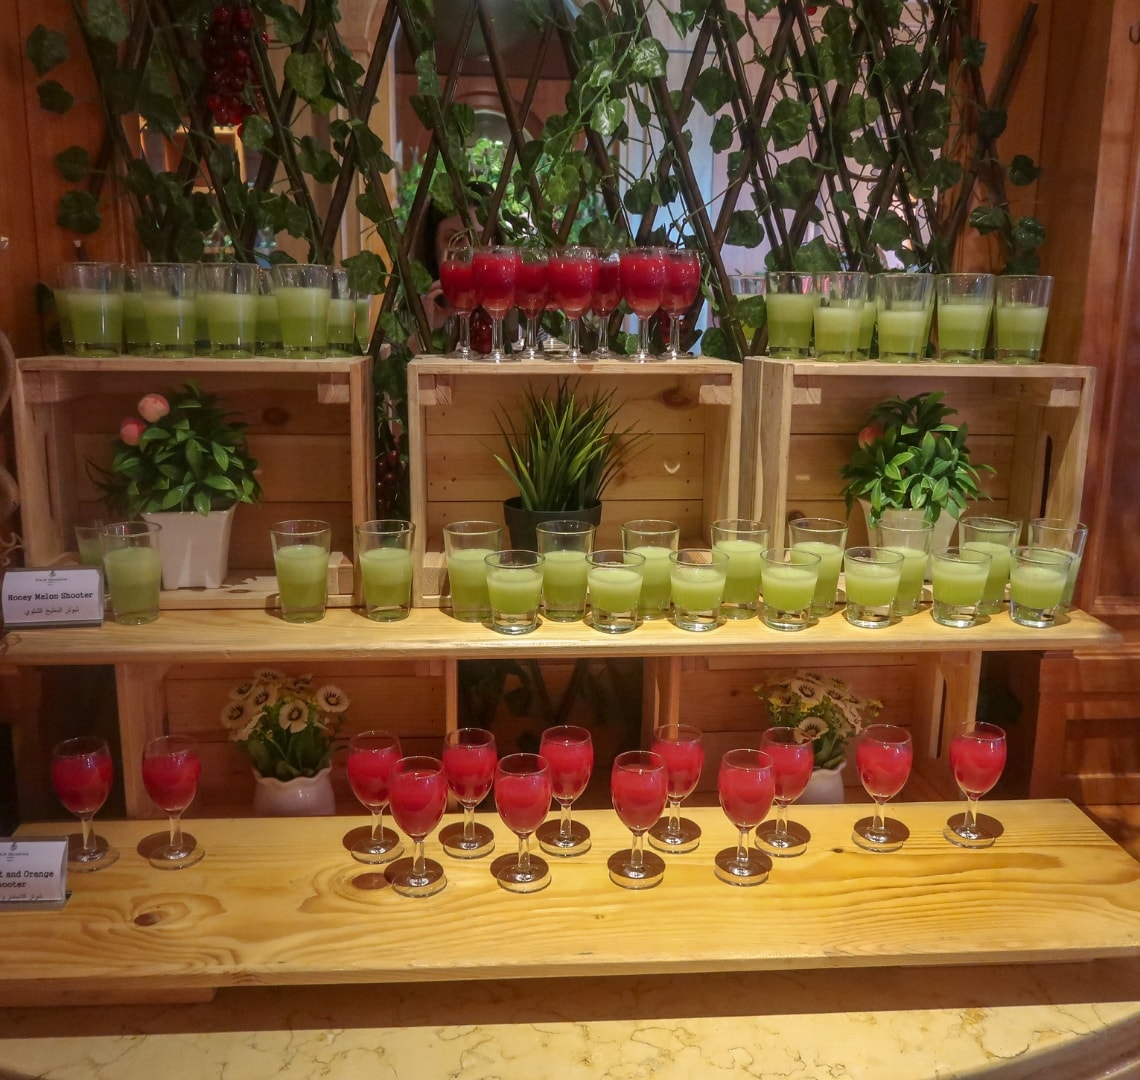 11 incredible things to do in Qatar - display of juices at a Doha brunch